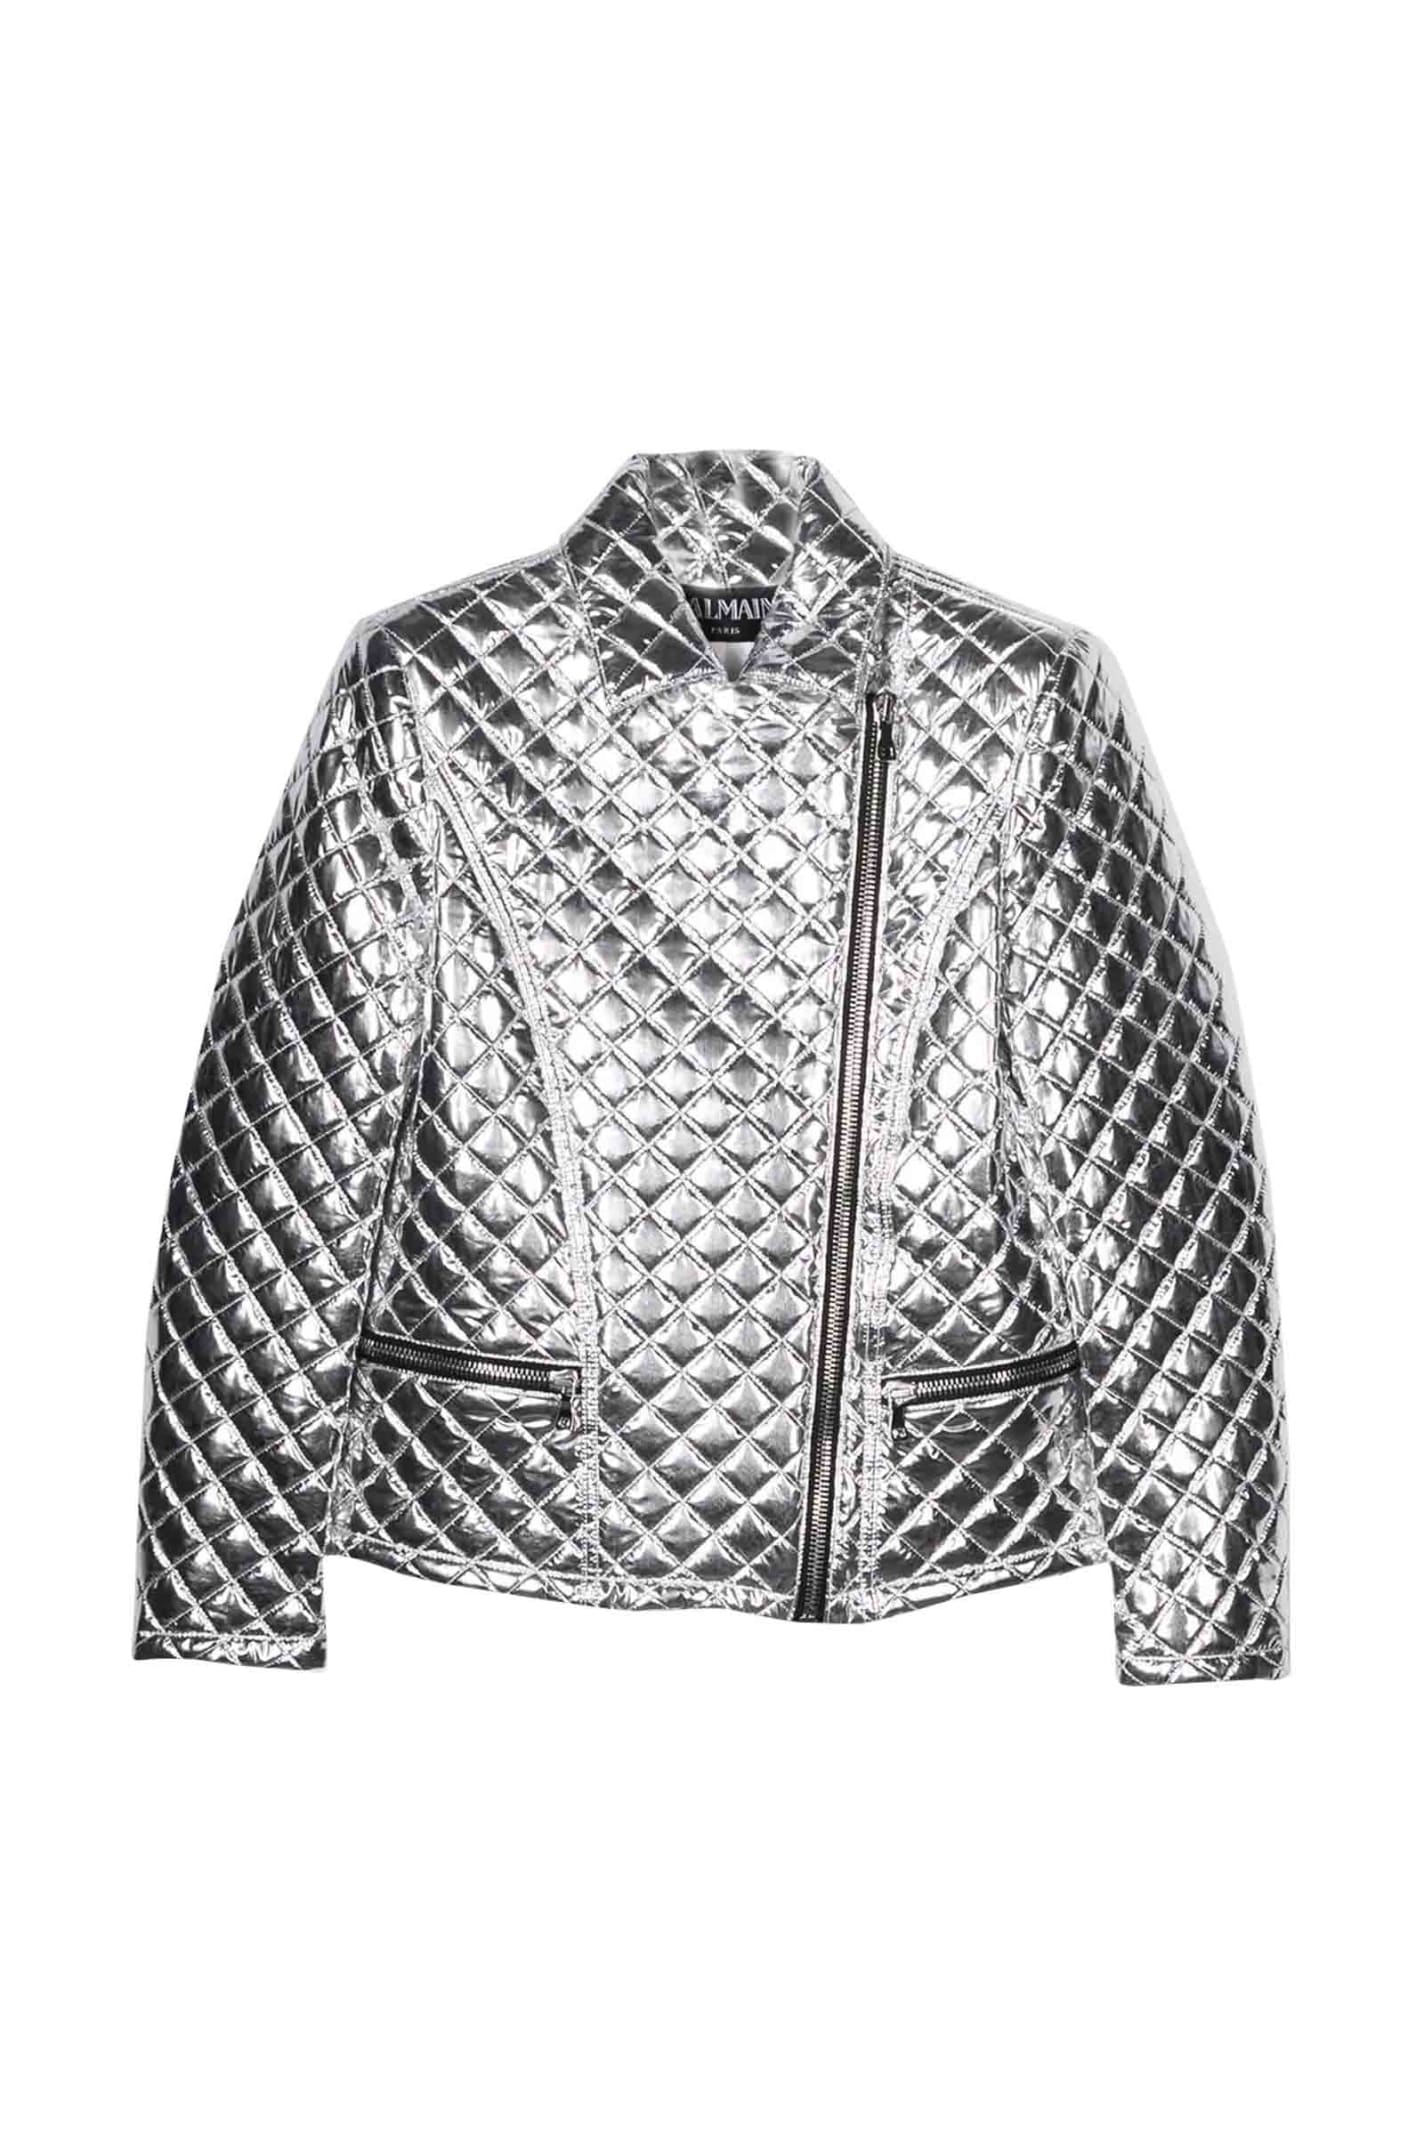 Balmain Kids' Quilted Jacket In Argento